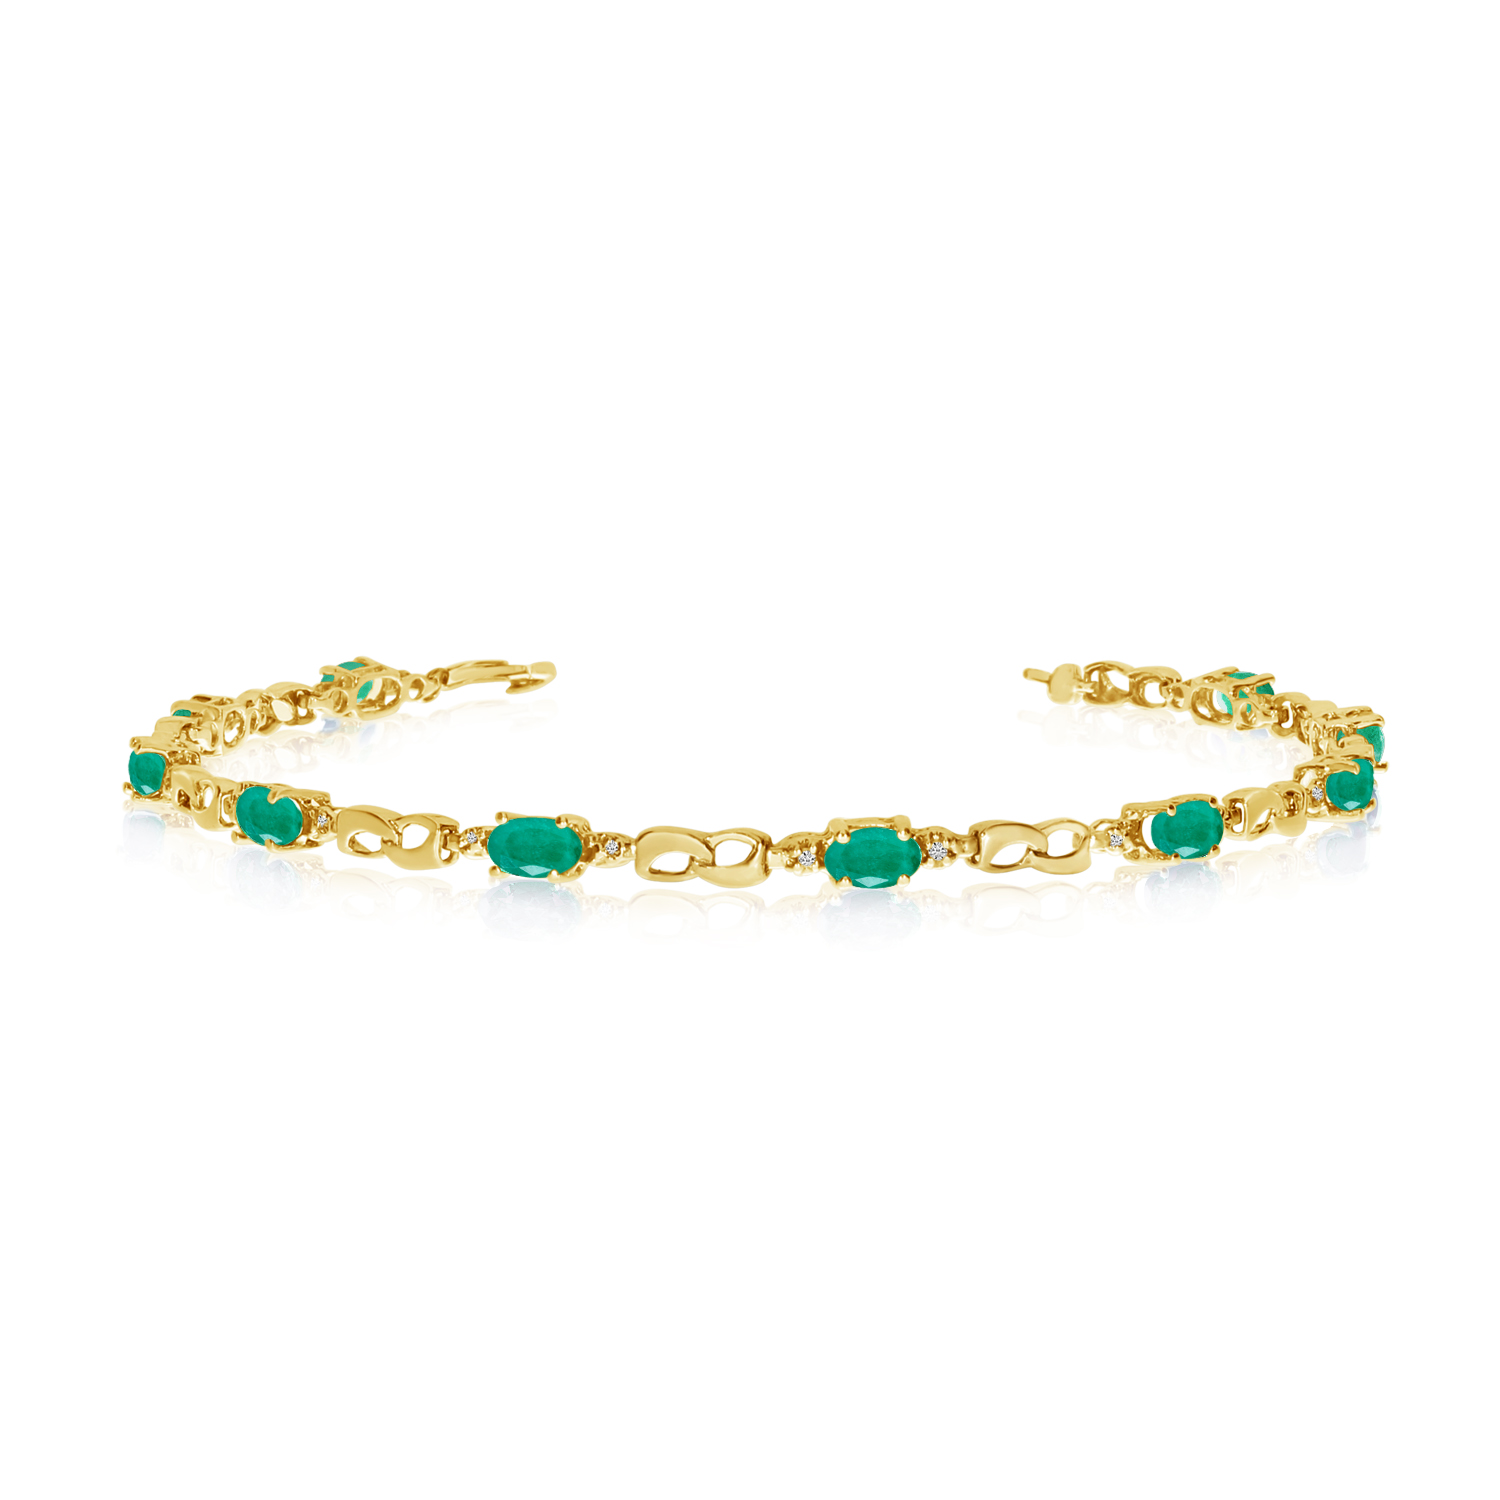 10K Yellow Gold Oval Emerald and Diamond Link Bracelet by